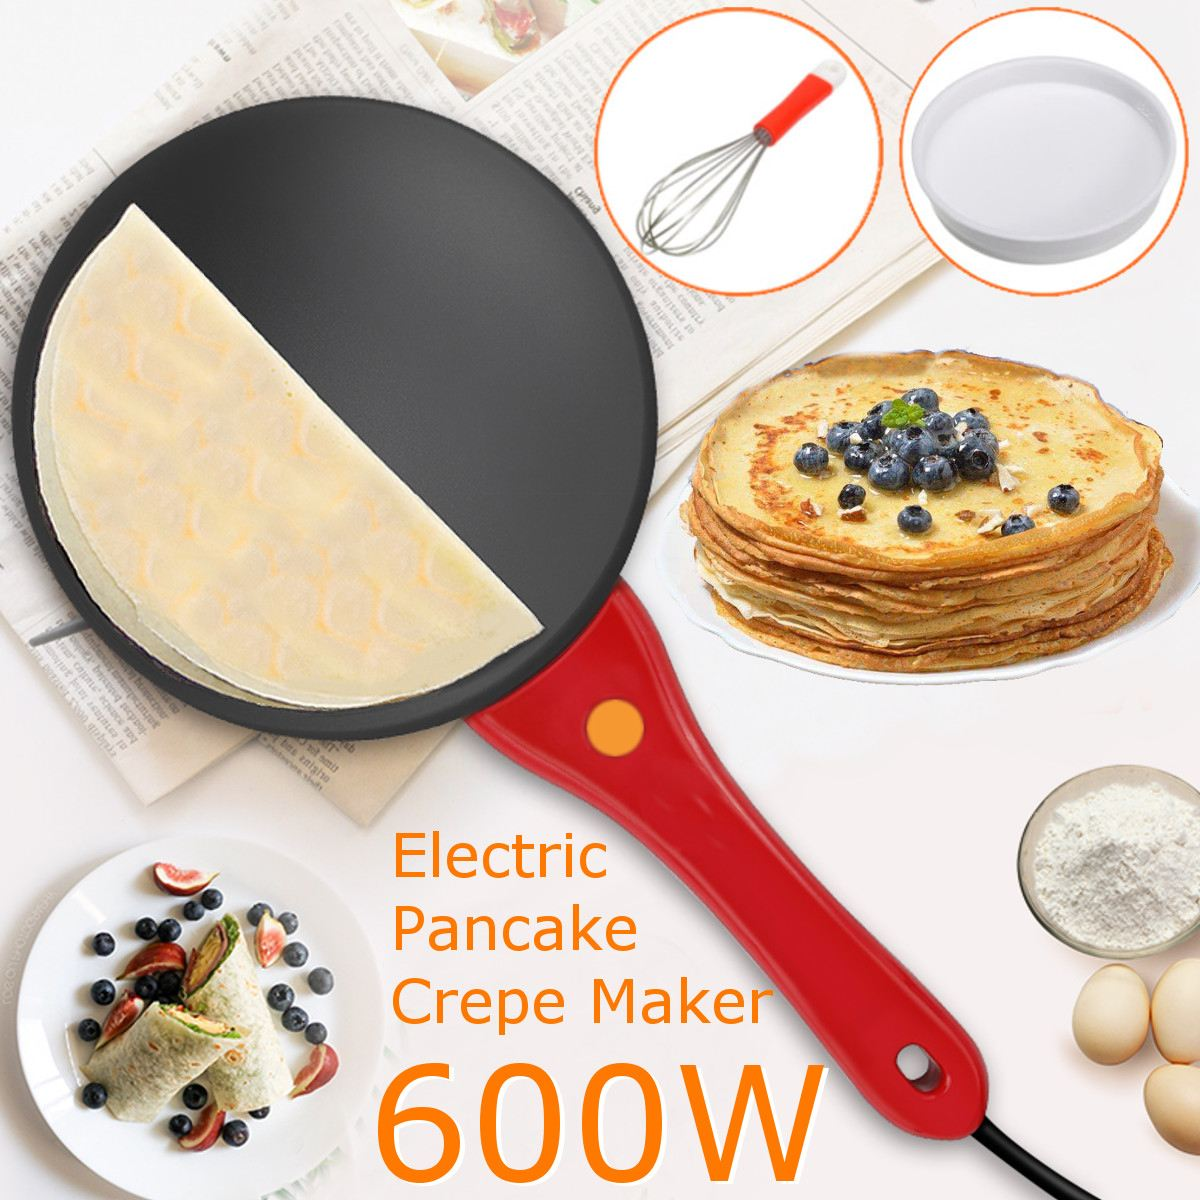 220V 600W Kitchen Electric Griddle Pancake Baking Crepe Maker Pan Pizza Cake Non-Stick Machine Home DIY Cooking +Egg Beater